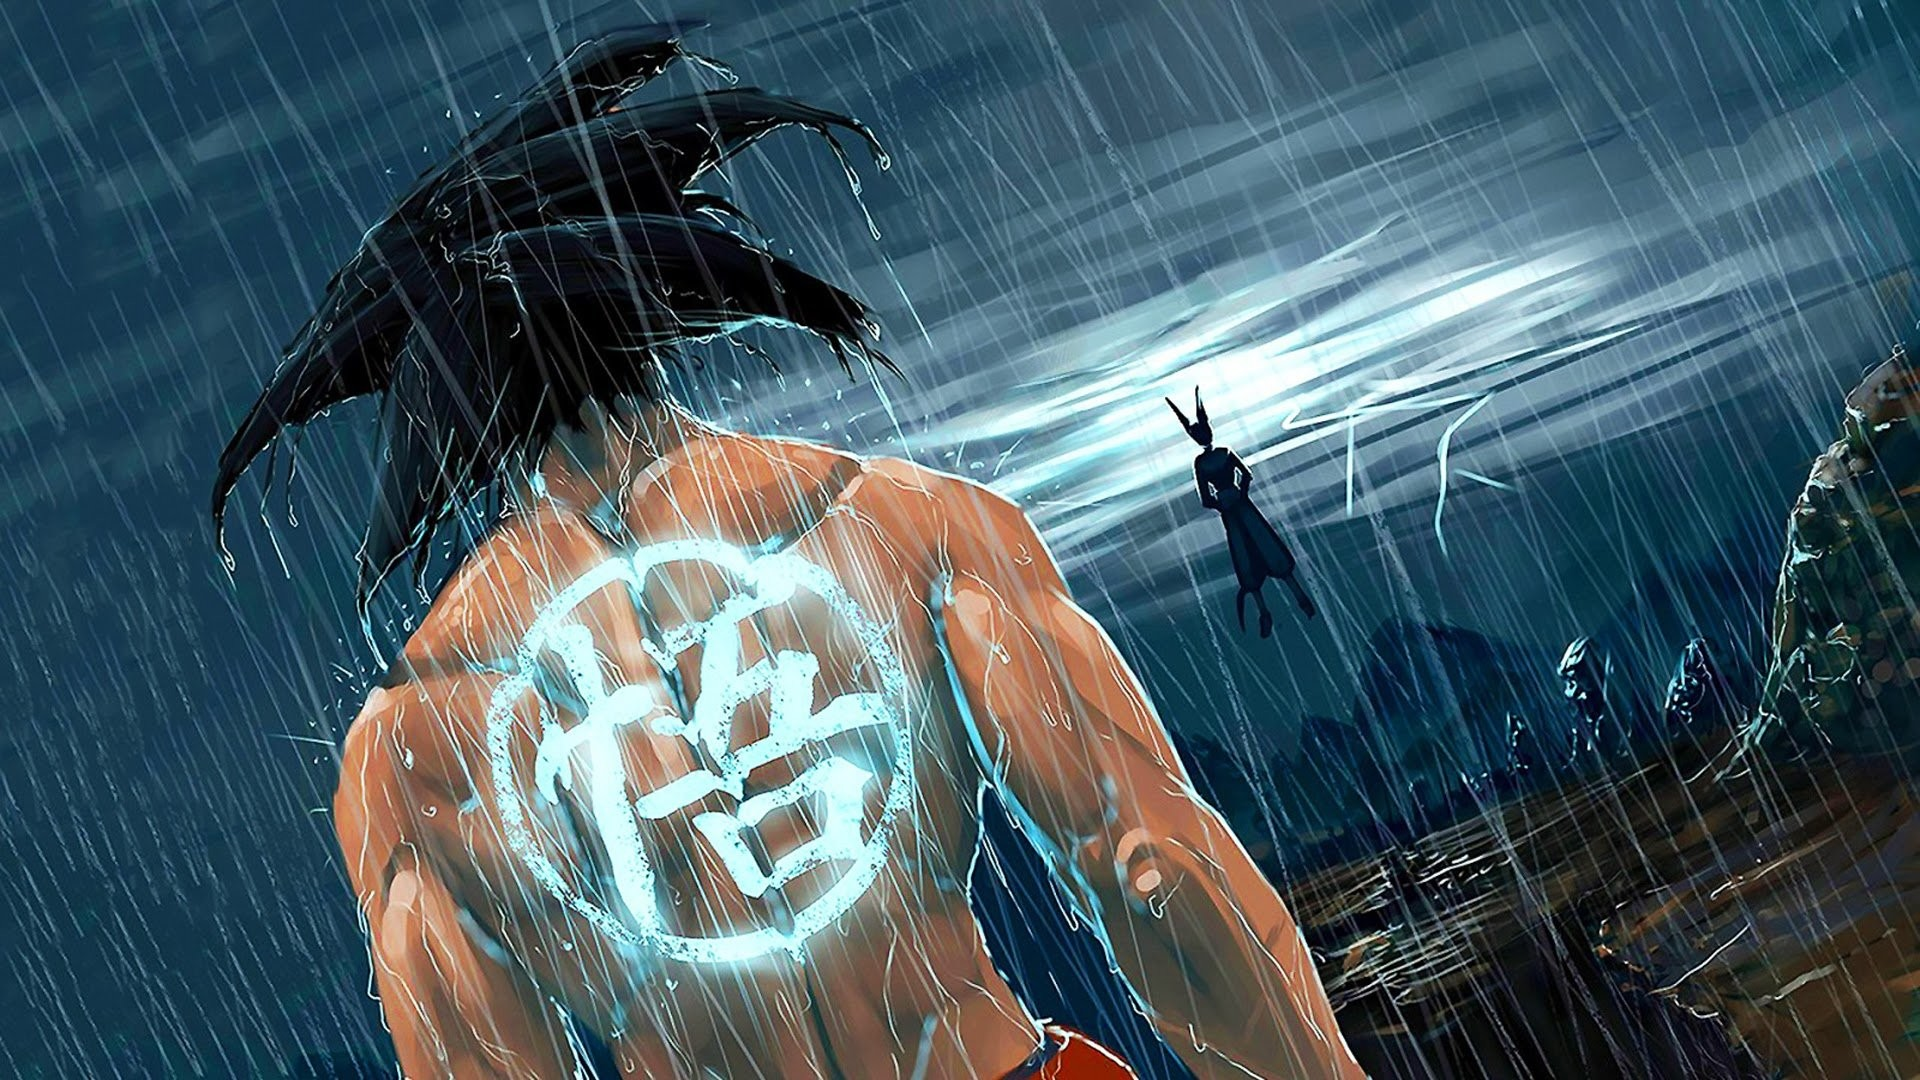 Res: 1920x1080,  Dragon Ball Z images wallpapers broly superman darkseid doomsday  Wallpapers, #28 of 55